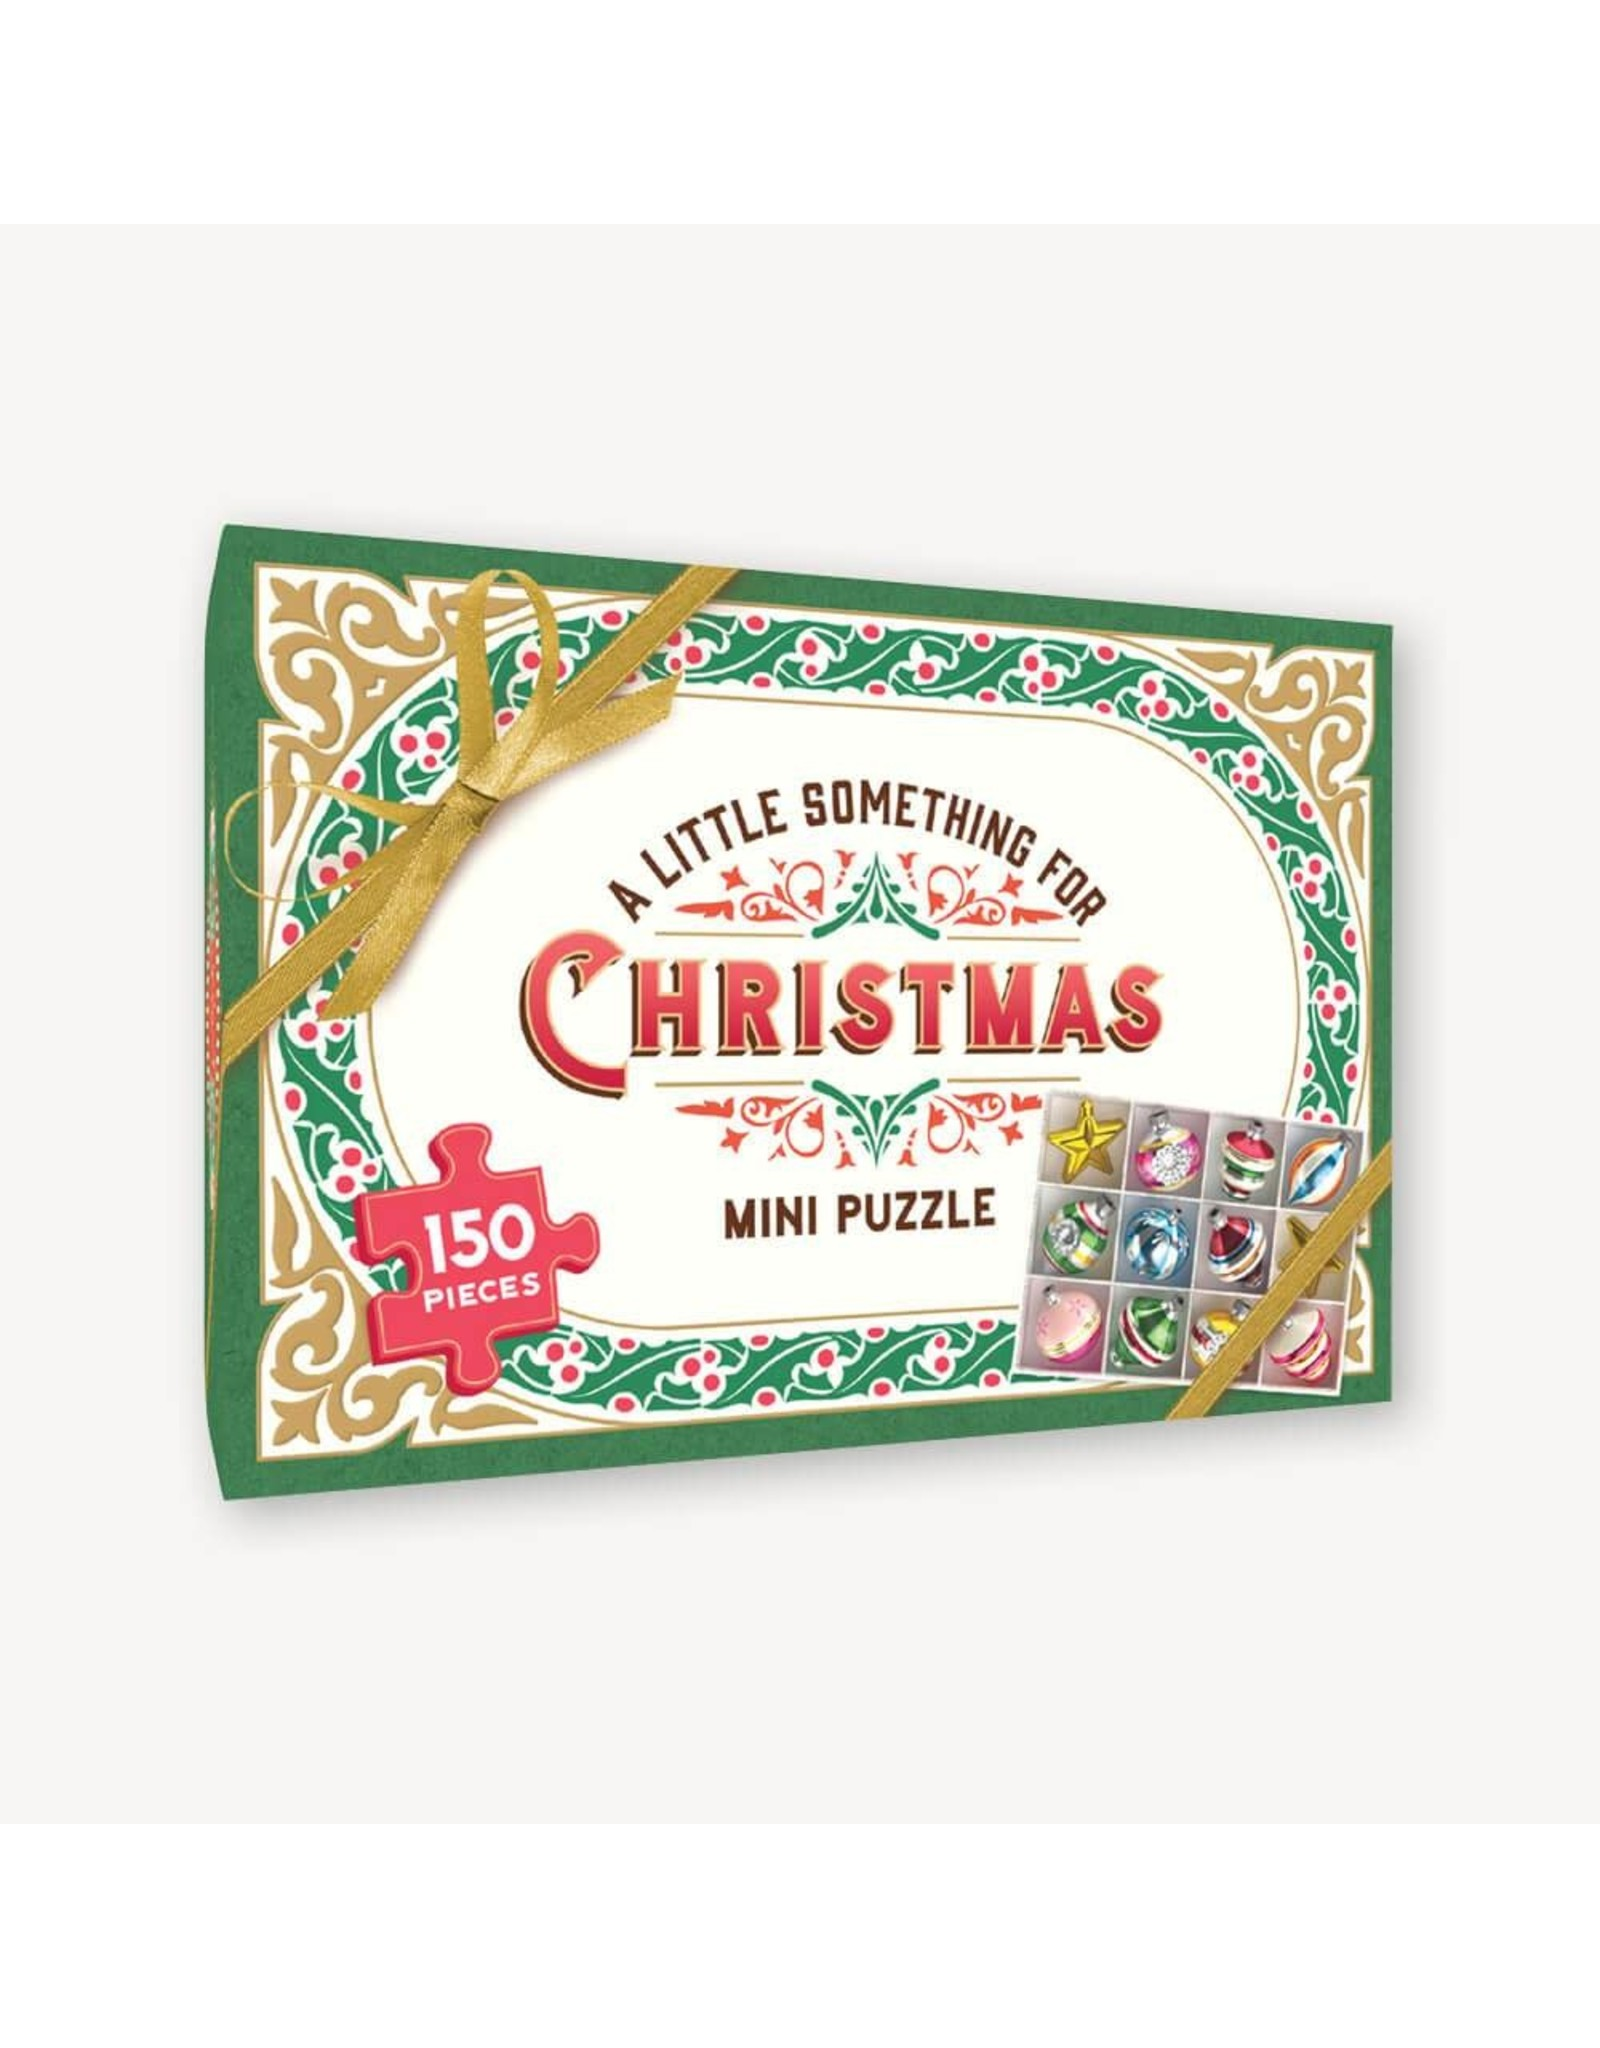 Chronicle Books A Little Something for Christmas: 150 Piece Mini Puzzle